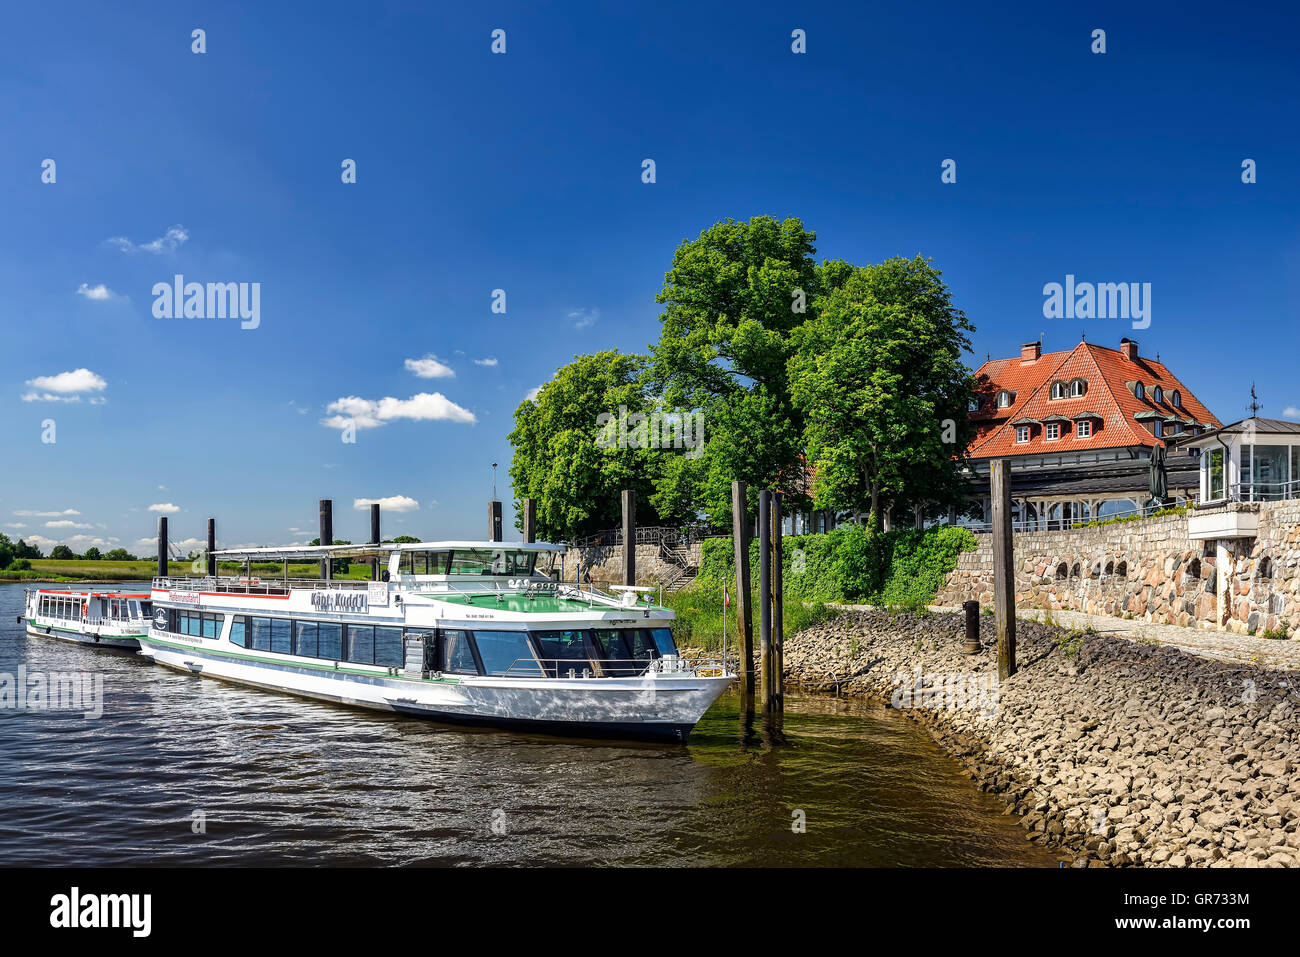 Zollenspieker Ferry House Restaurant And Hotel In Hamburg, Germany - Stock Image